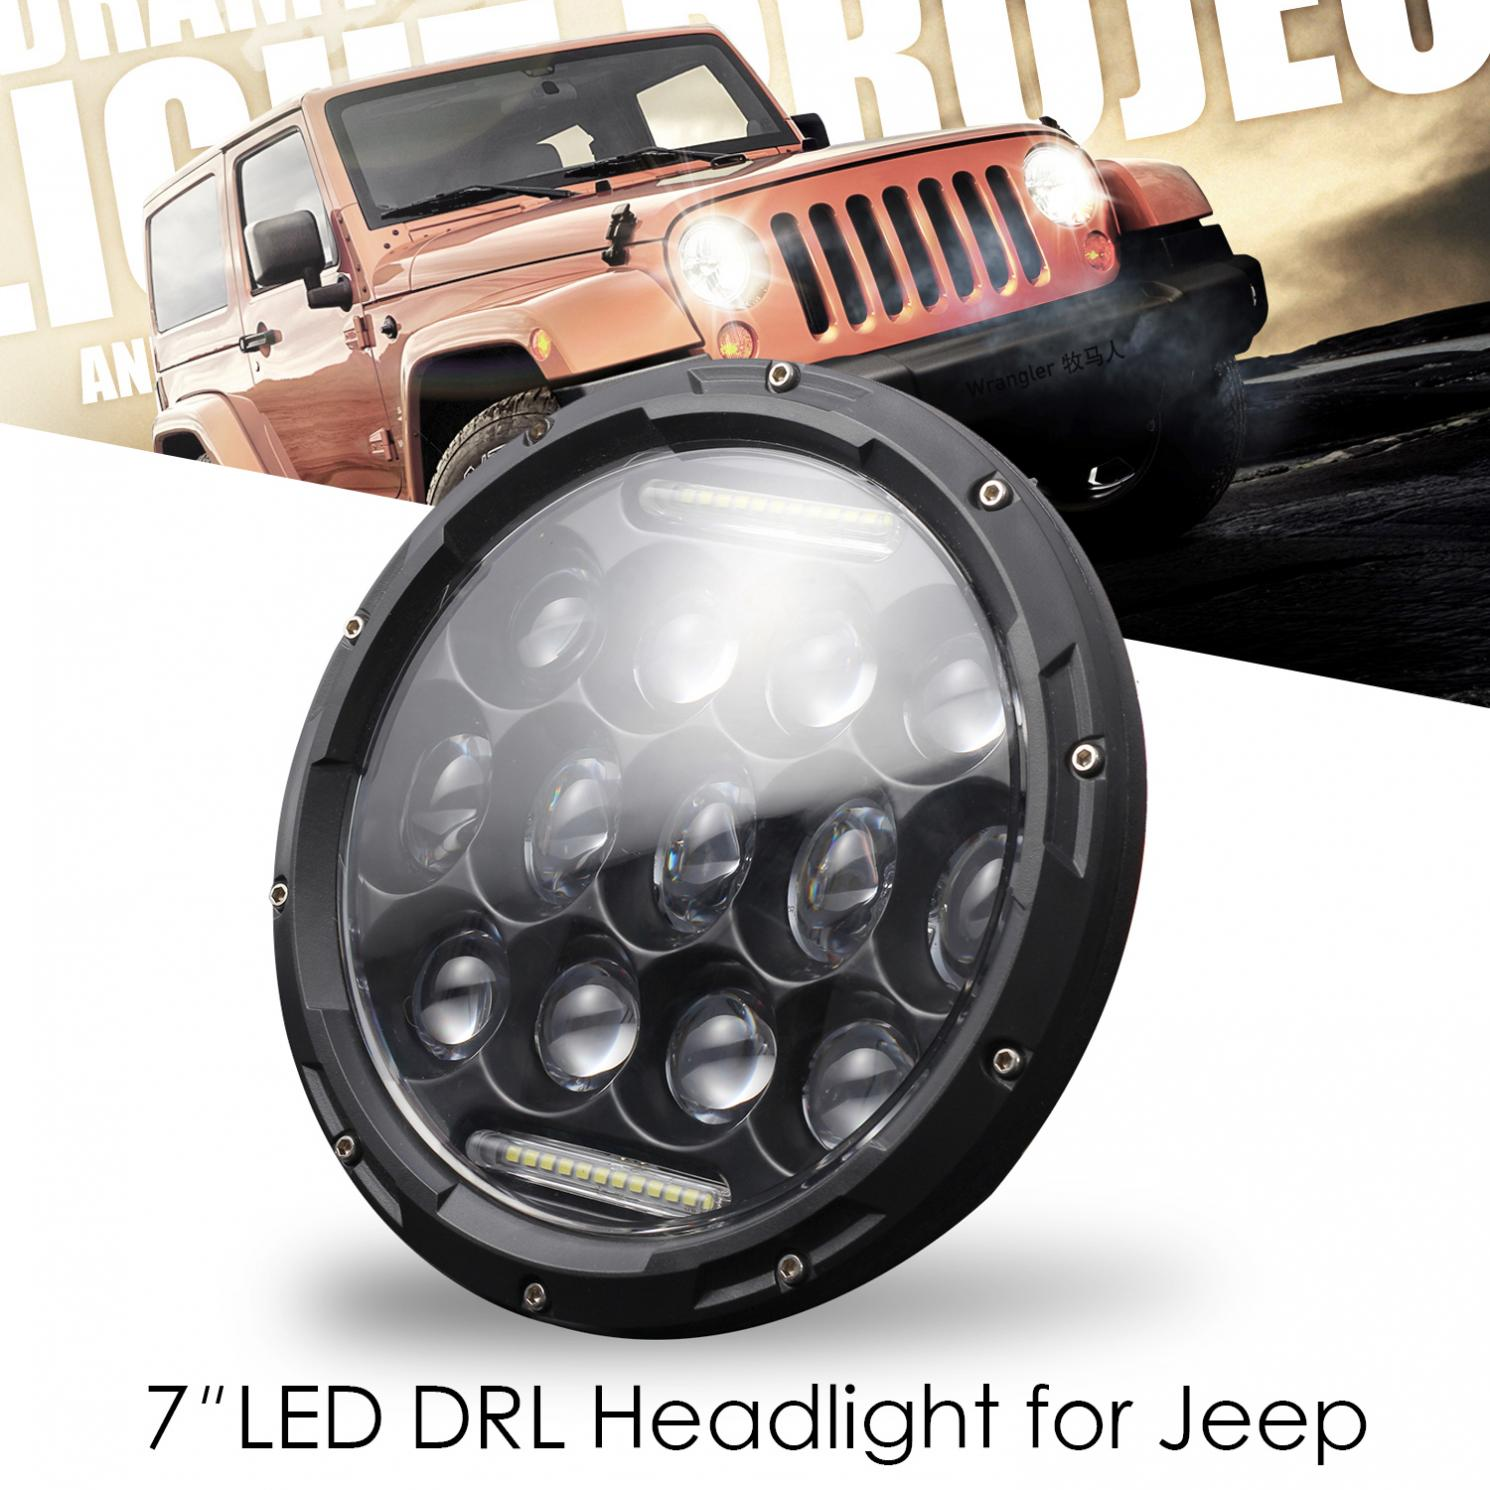 7 Inch 300W Waterproof LED Car Headlight Daytime Running Light High Low Beam Turn Sighal DRL Lamp for Jeep Wrangler